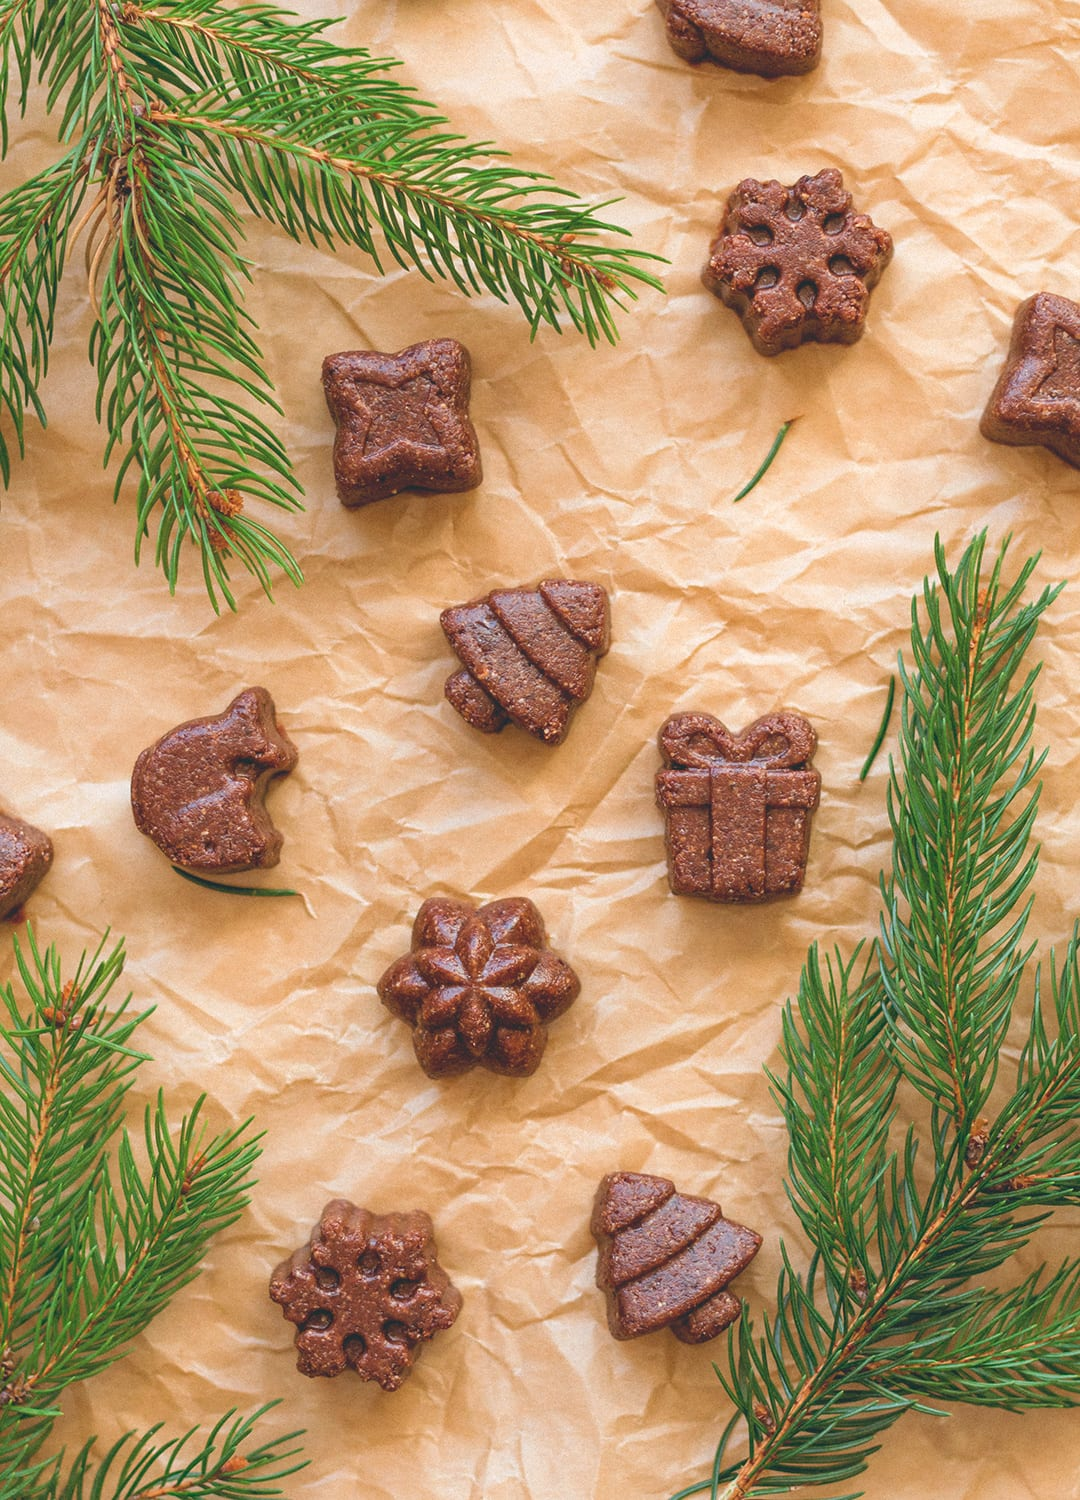 12 Christmas Recipes You Need to Make This Year: Chocolate Hazelnut Fudge Bites - delicious vegan & GF festive treats (great for any time of the year, really). No added sugar, sweetened with dates! You'll love these! Such an easy recipe. | thehealthfulideas.com